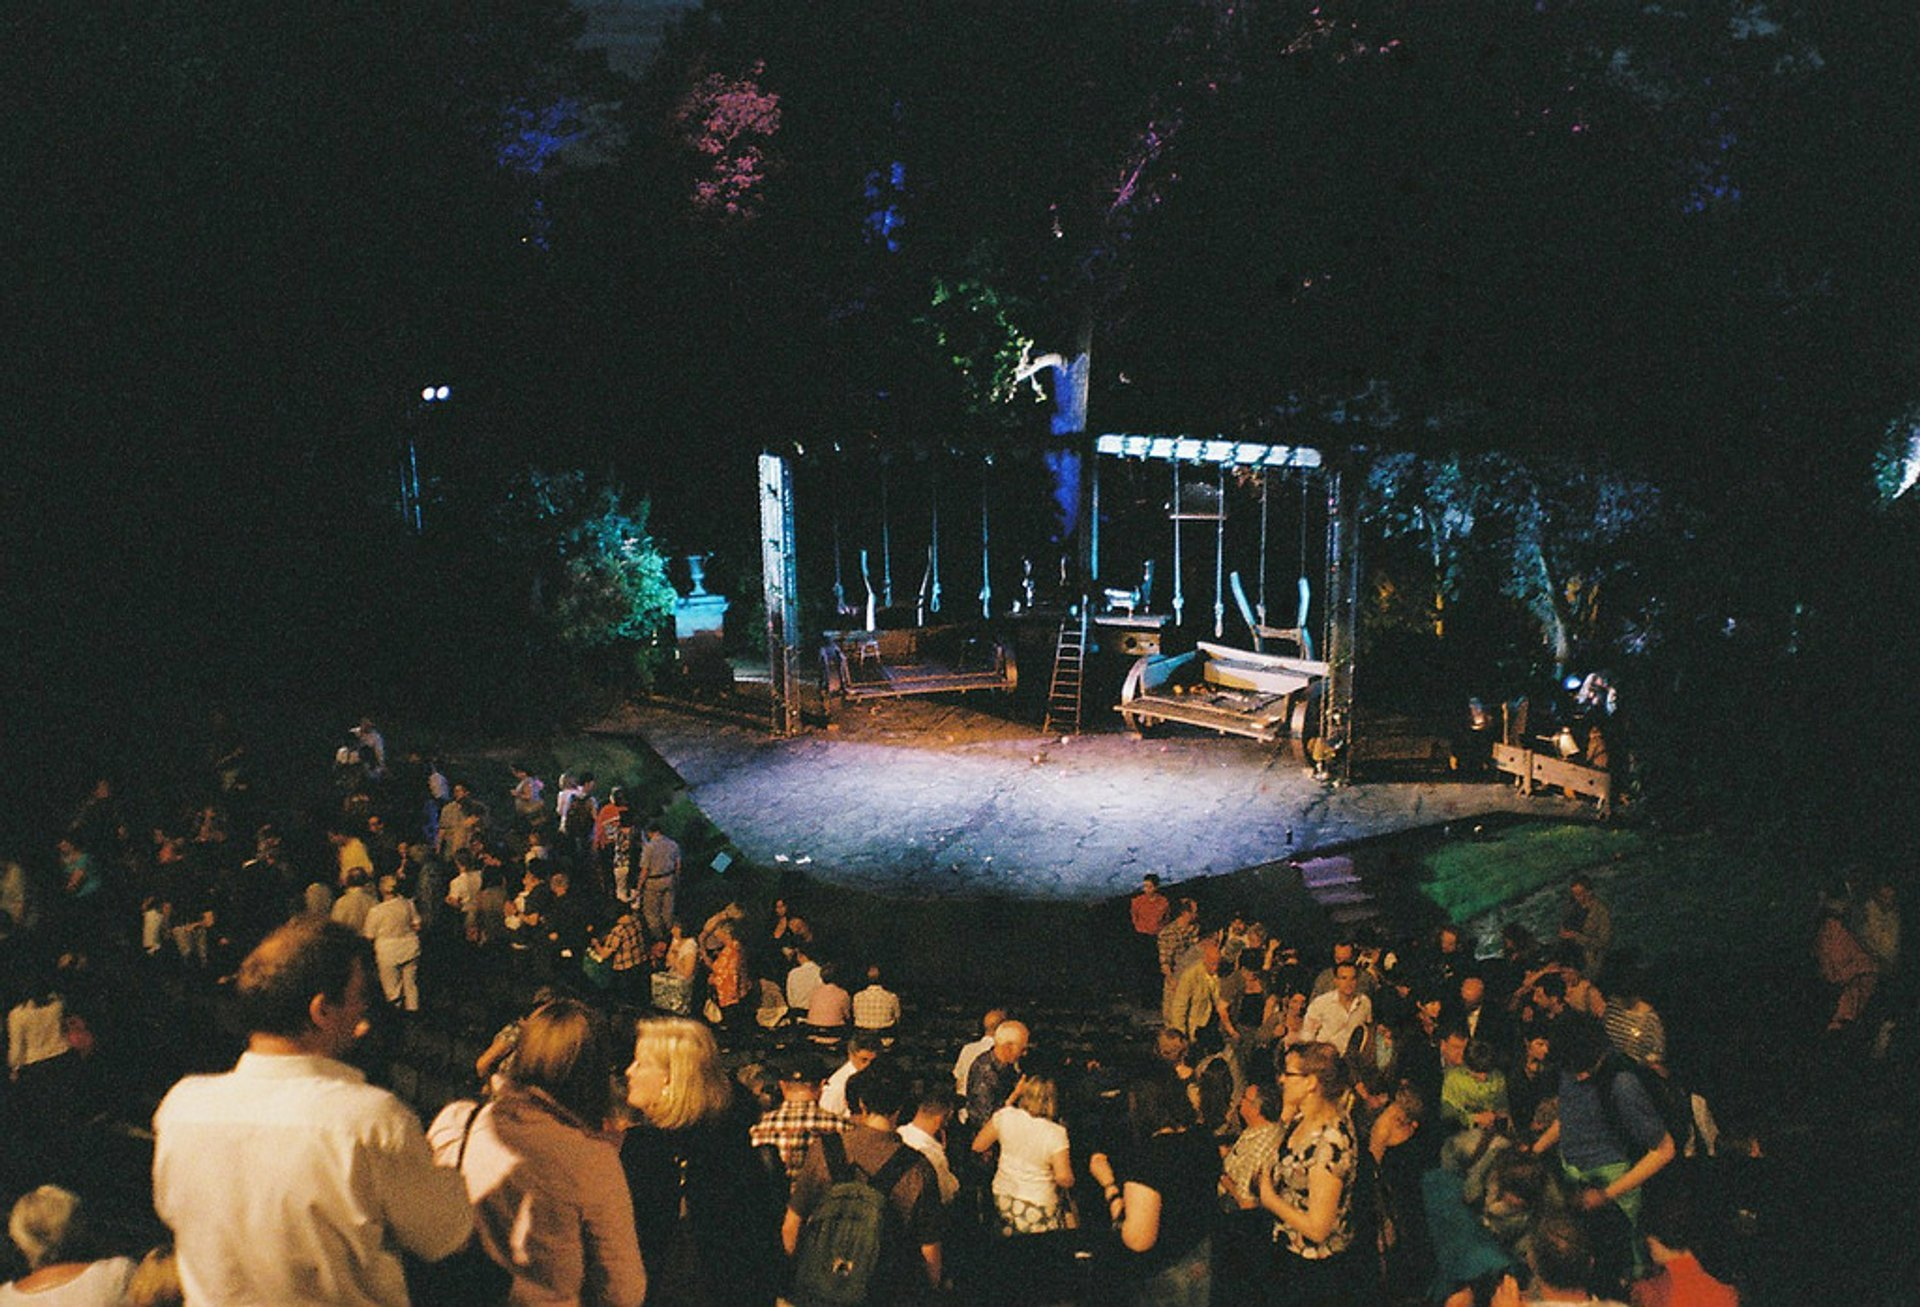 Regent's Park Open Air Theatre in London - Best Season 2019